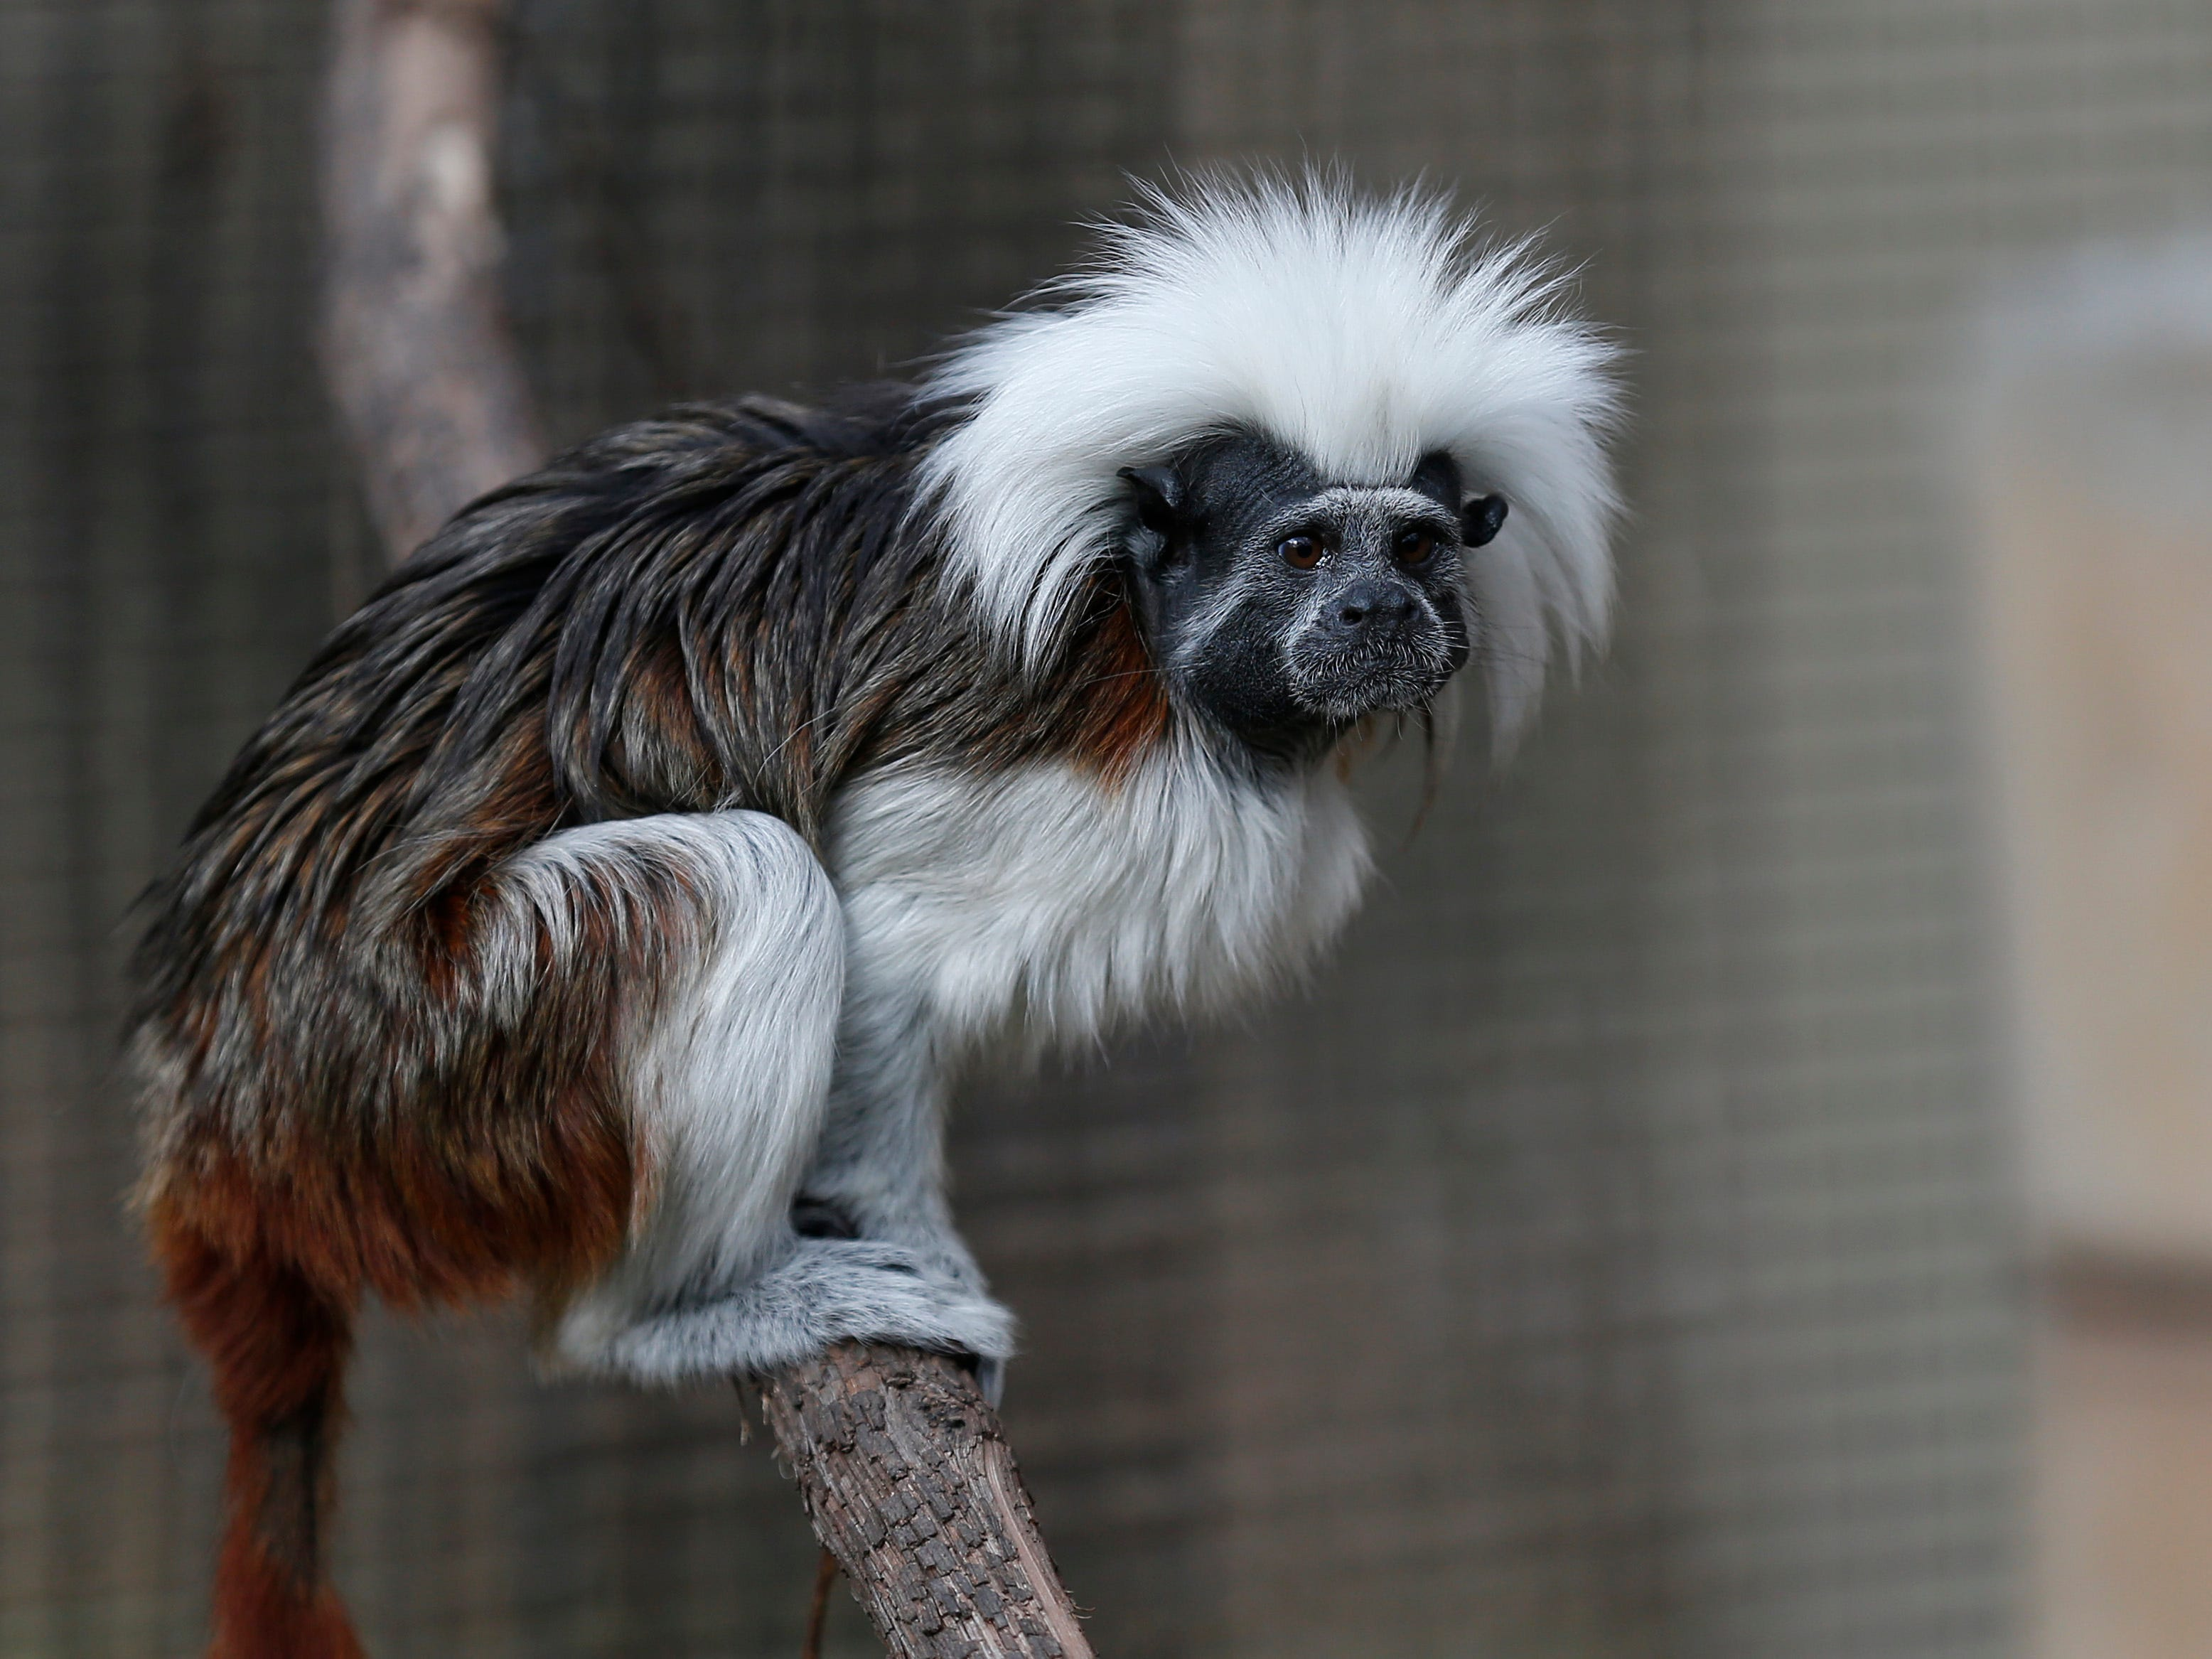 Cotton-top Tamarin with its distinct white tuft of hair is found only in northwestern Columbia and is an endangered species.